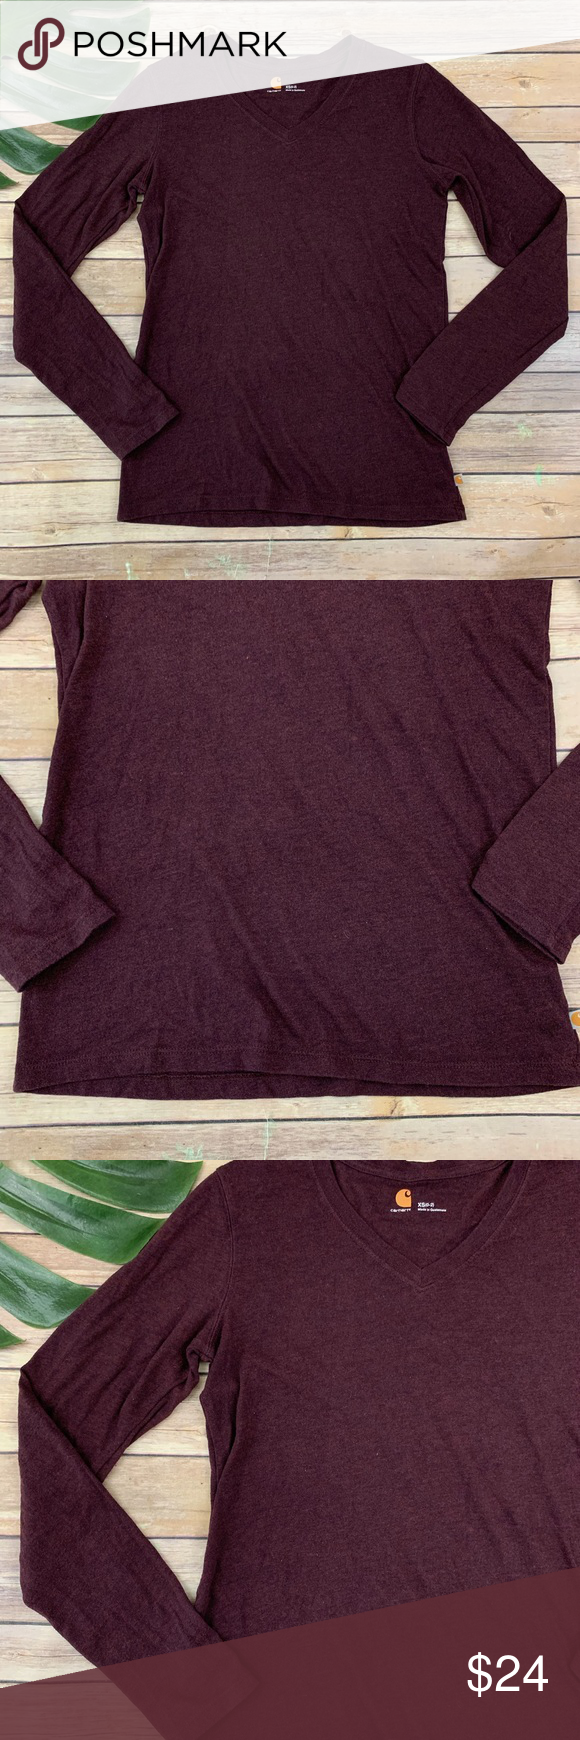 Carhartt womens dark purple long sleeve v-neck top Carhartt women's dark purple long sleeve v-neck top, size XS. Measures about 34 around bust, about 24 long. Free of rips and stains. Carhartt Tops Tees - Long Sleeve #carharttwomen Carhartt womens dark purple long sleeve v-neck top Carhartt women's dark purple long sleeve v-neck top, size XS. Measures about 34 around bust, about 24 long. Free of rips and stains. Carhartt Tops Tees - Long Sleeve #carharttwomen Carhartt womens dark purple long s #carharttwomen